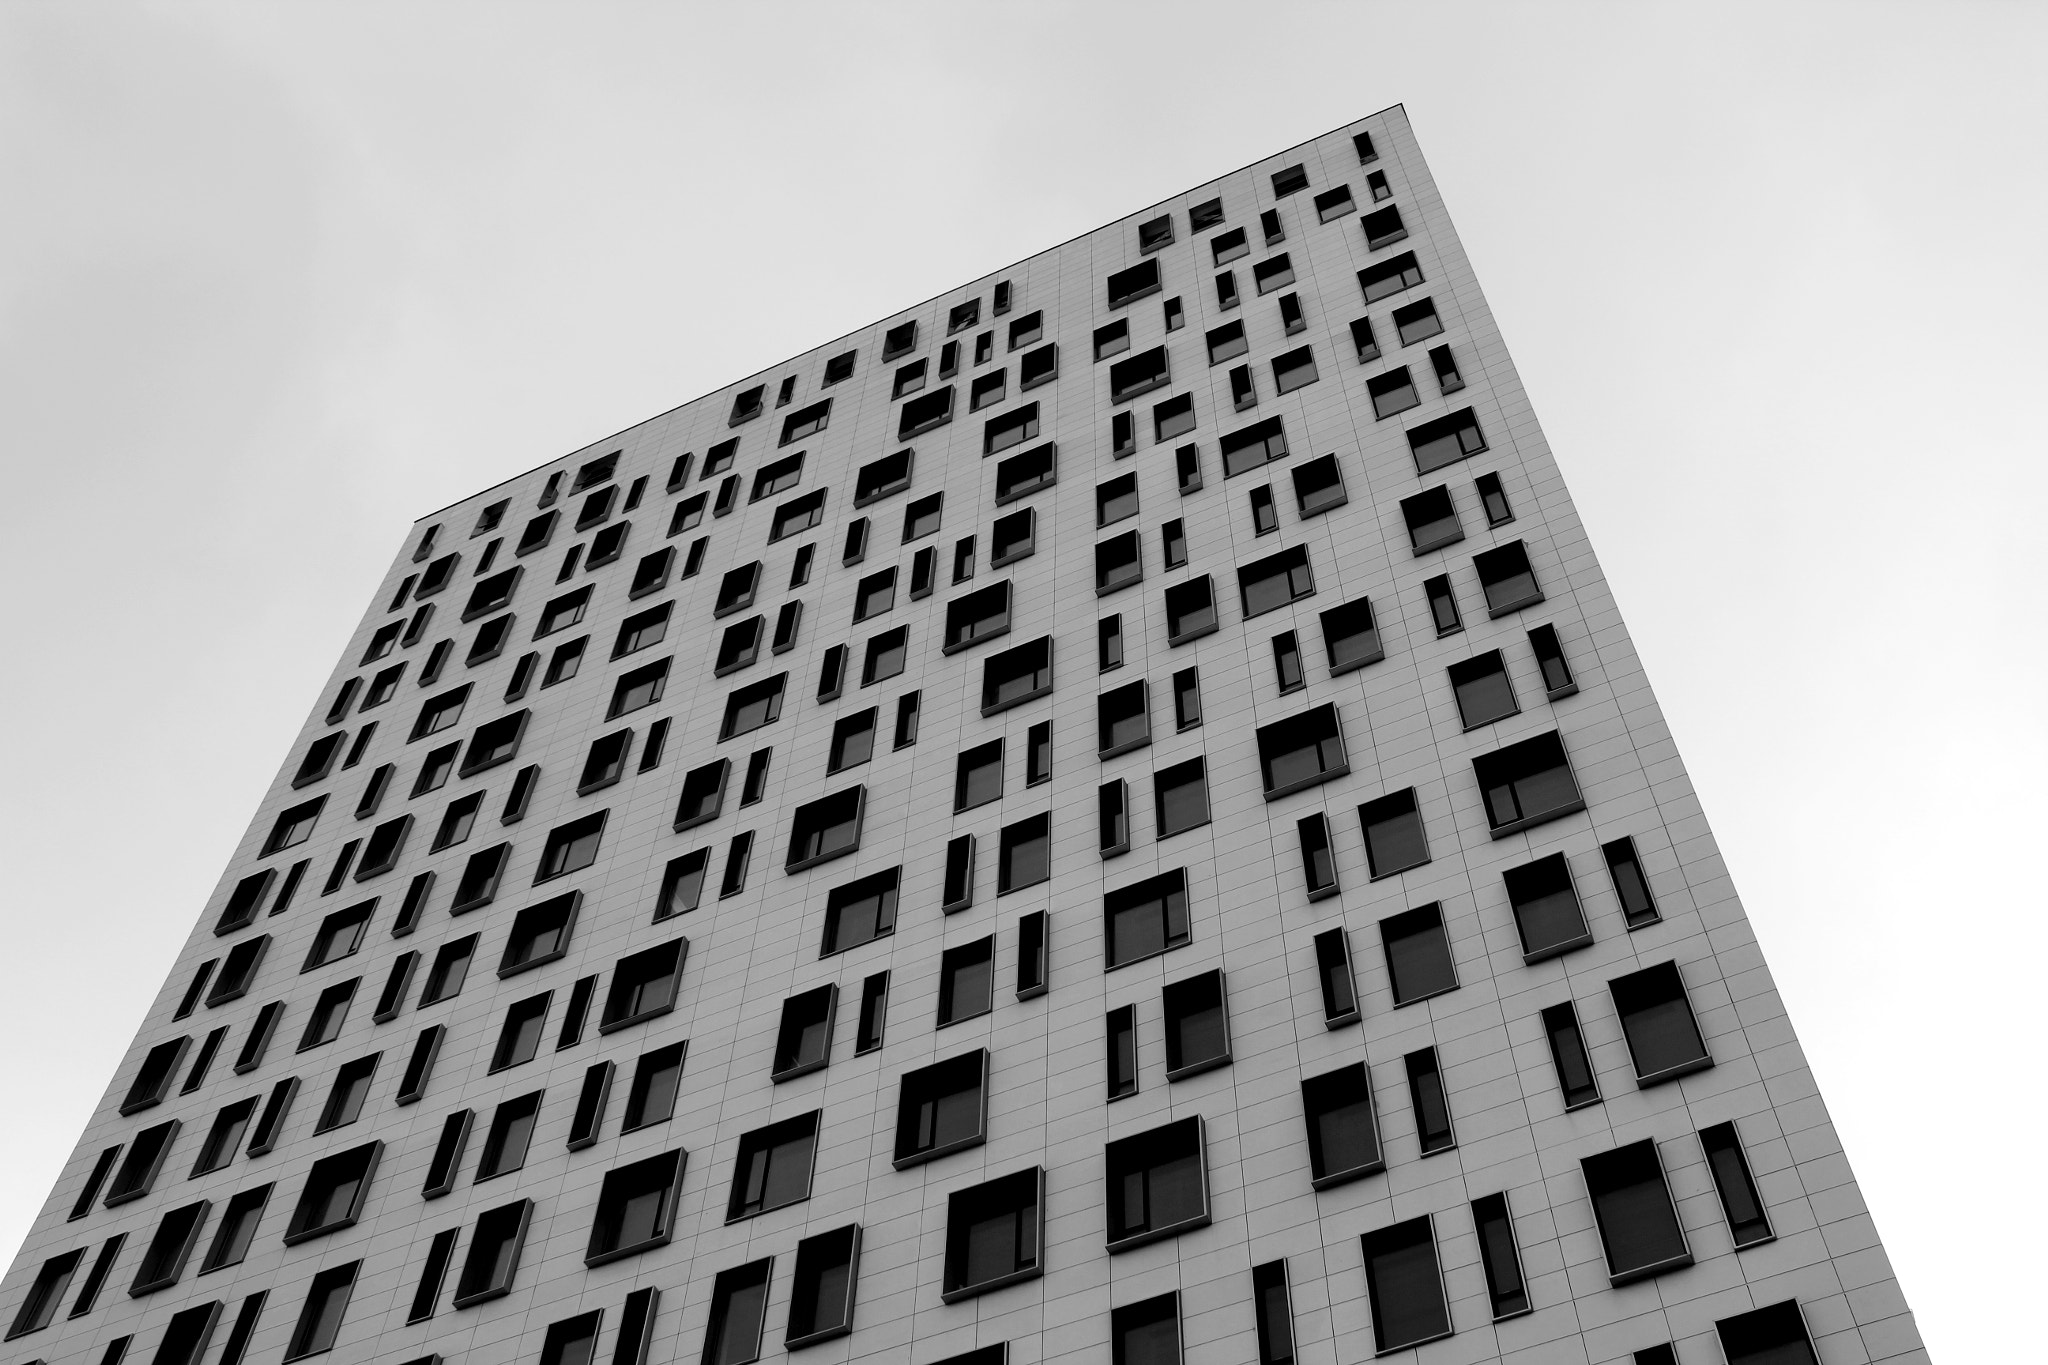 Photograph Vertical Lines Part 1 by Mihai Adam on 500px